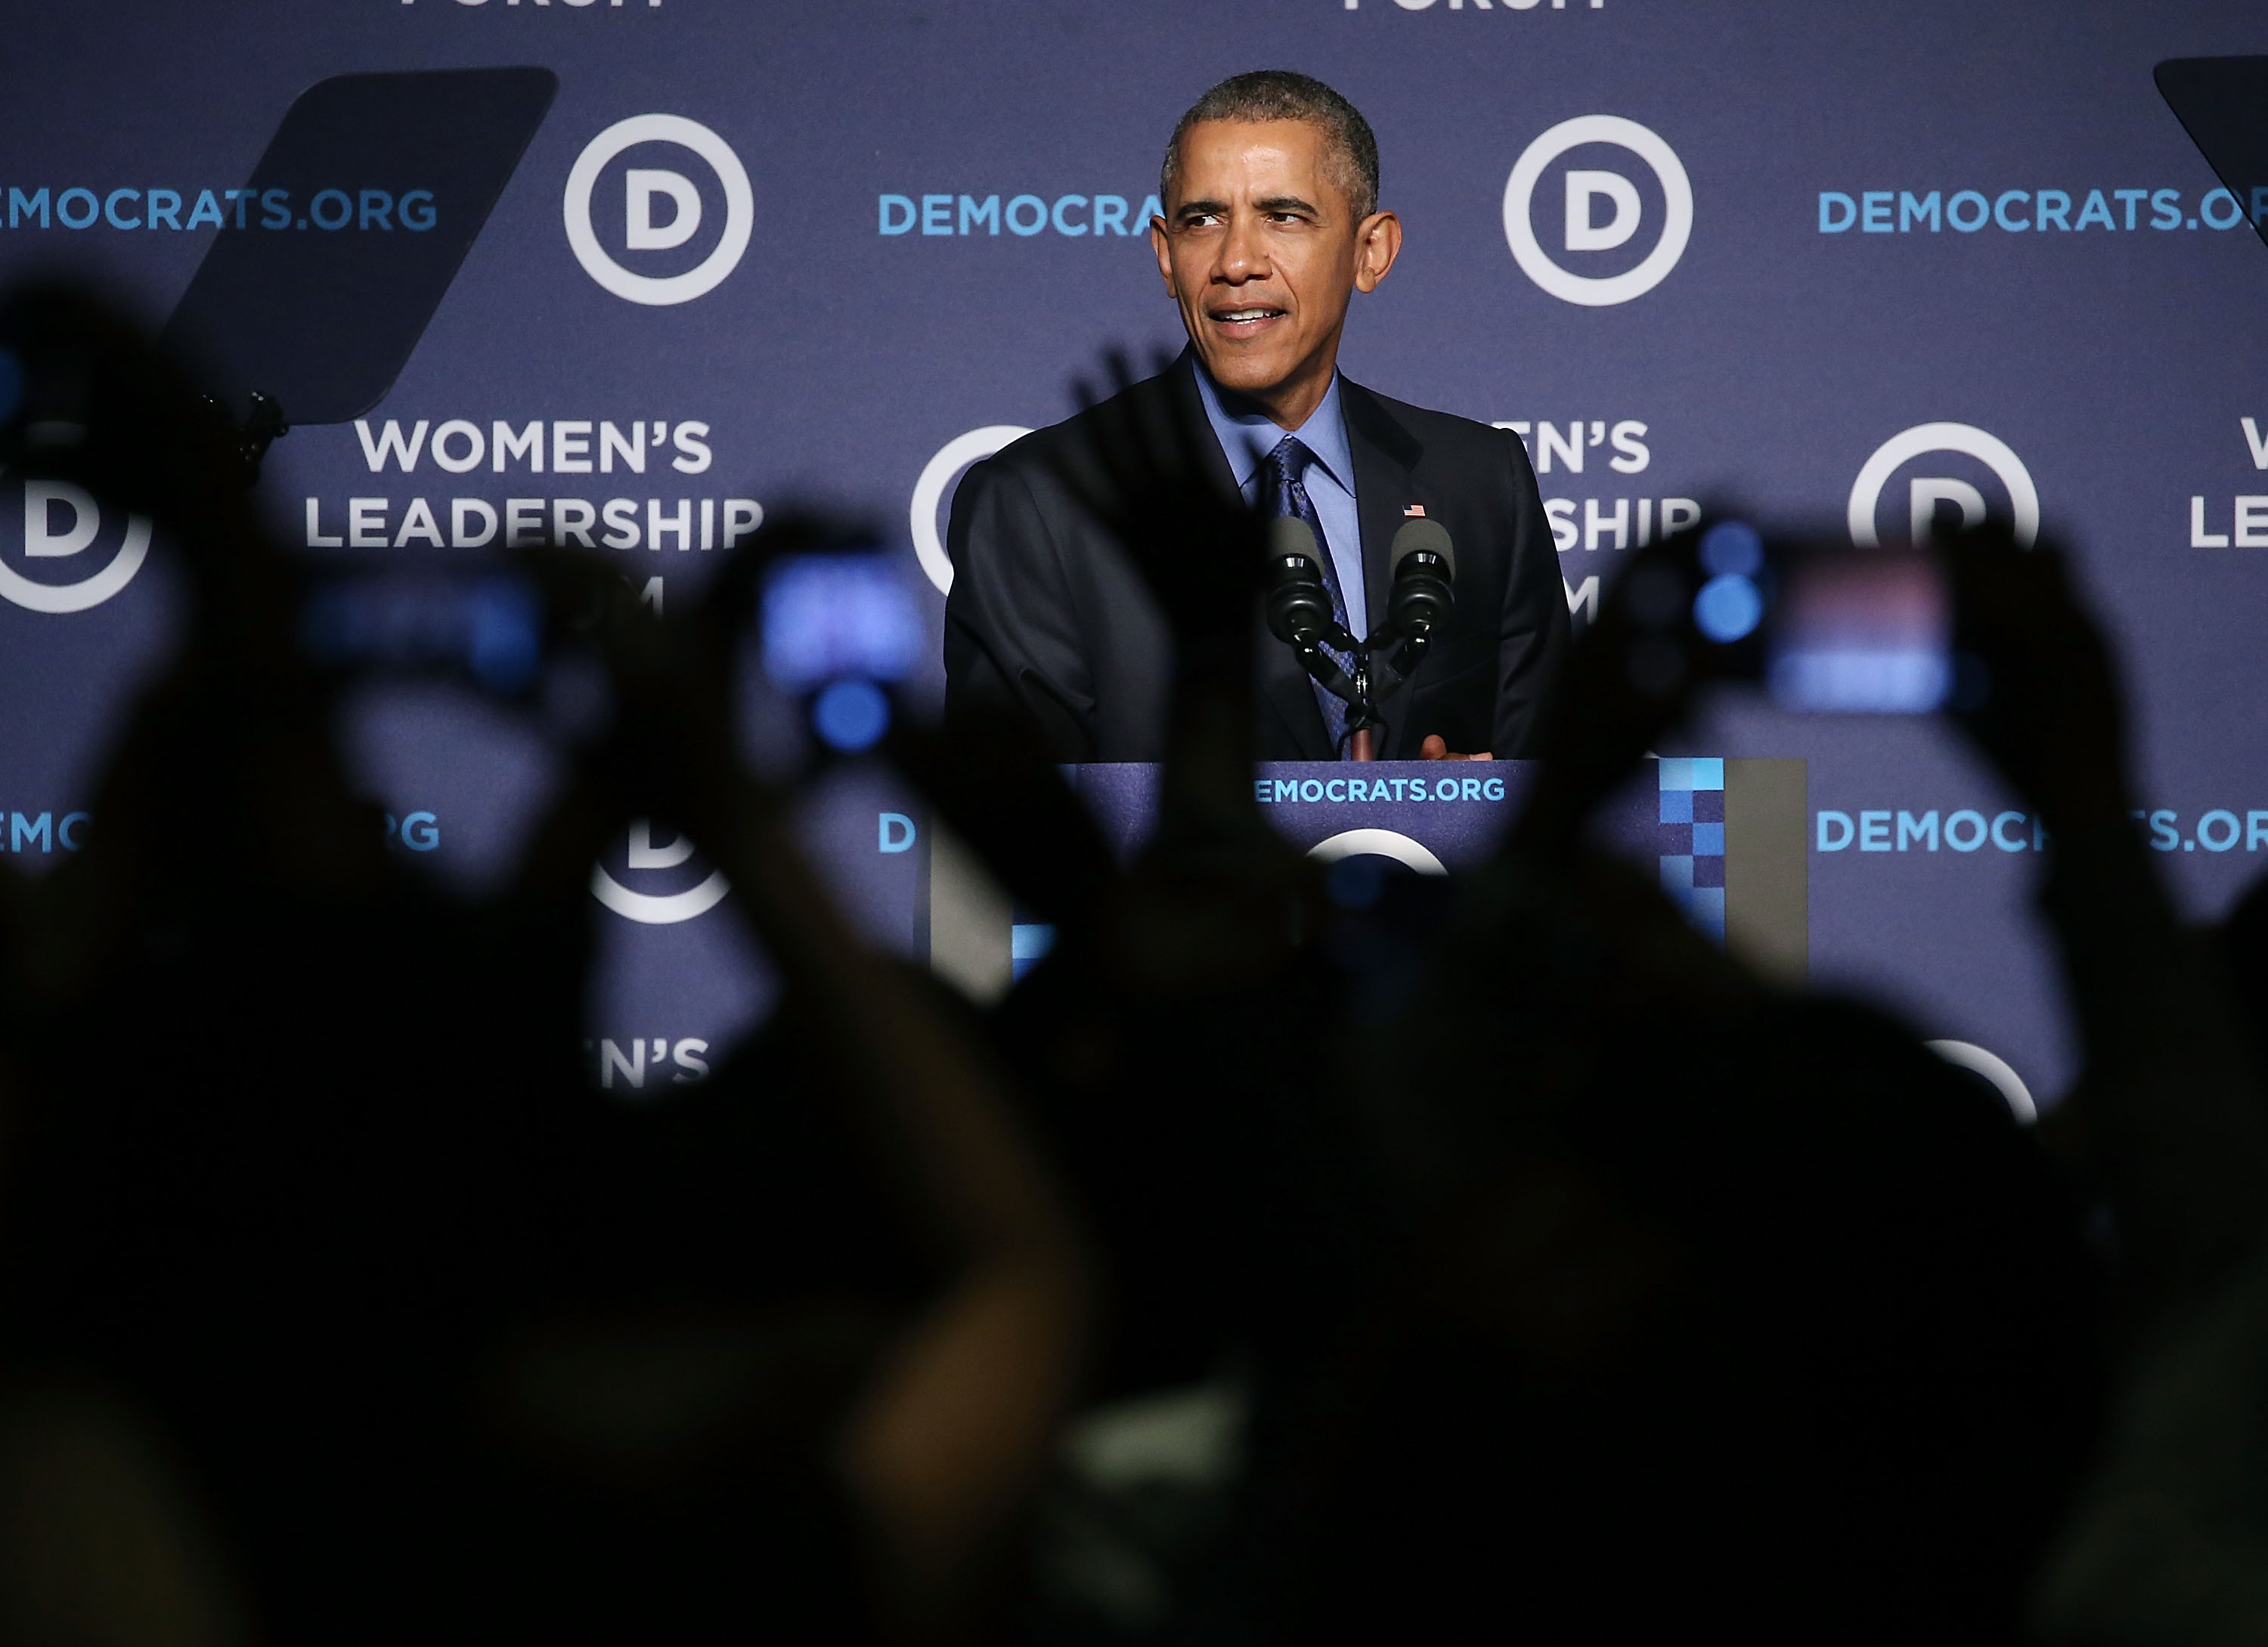 President Obama speaks at the Democratic National Committee's Women's Leadership Forum in Washington, DC on Oct. 23, 2015.